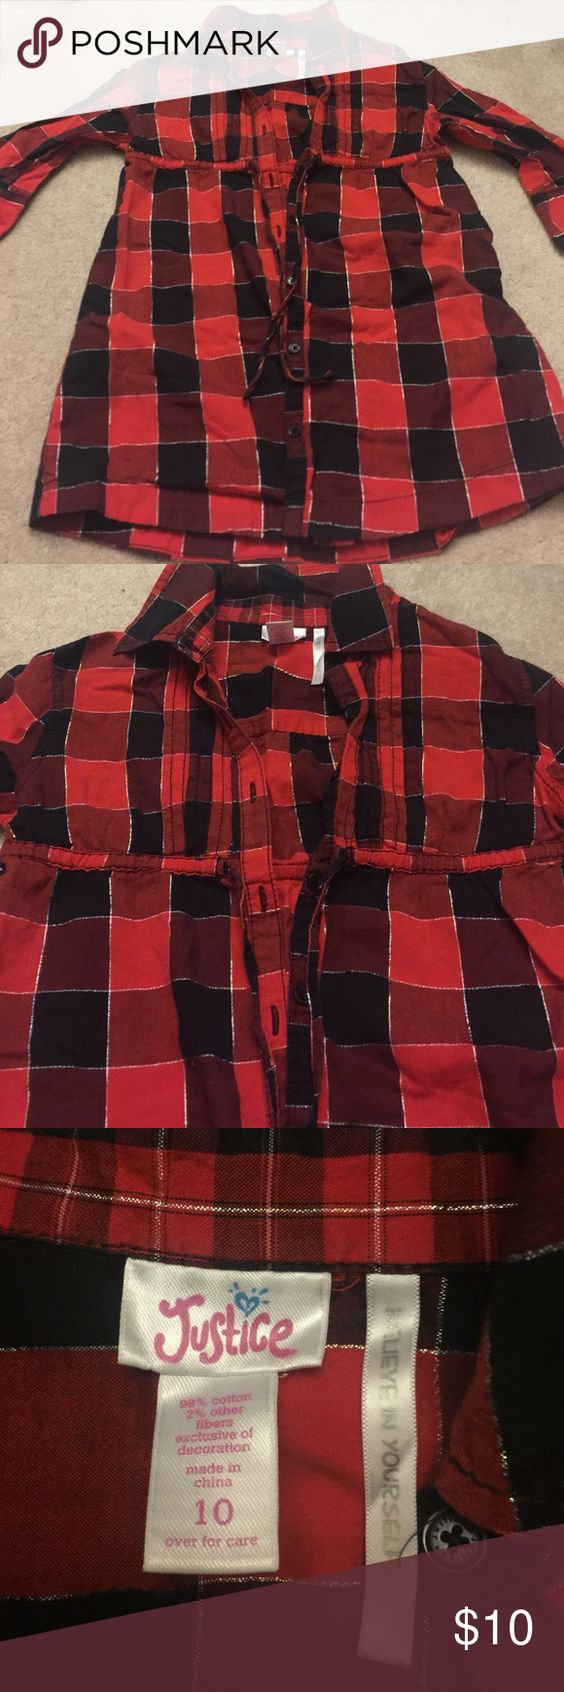 3/4 sleeve plaid button down shirt Red, black and silver plaid. Button down with tie under the bust line. 3/4 sleeve- looks adorable on. Worn once for photos! Justice Shirts & Tops Tees - Long Sleeve